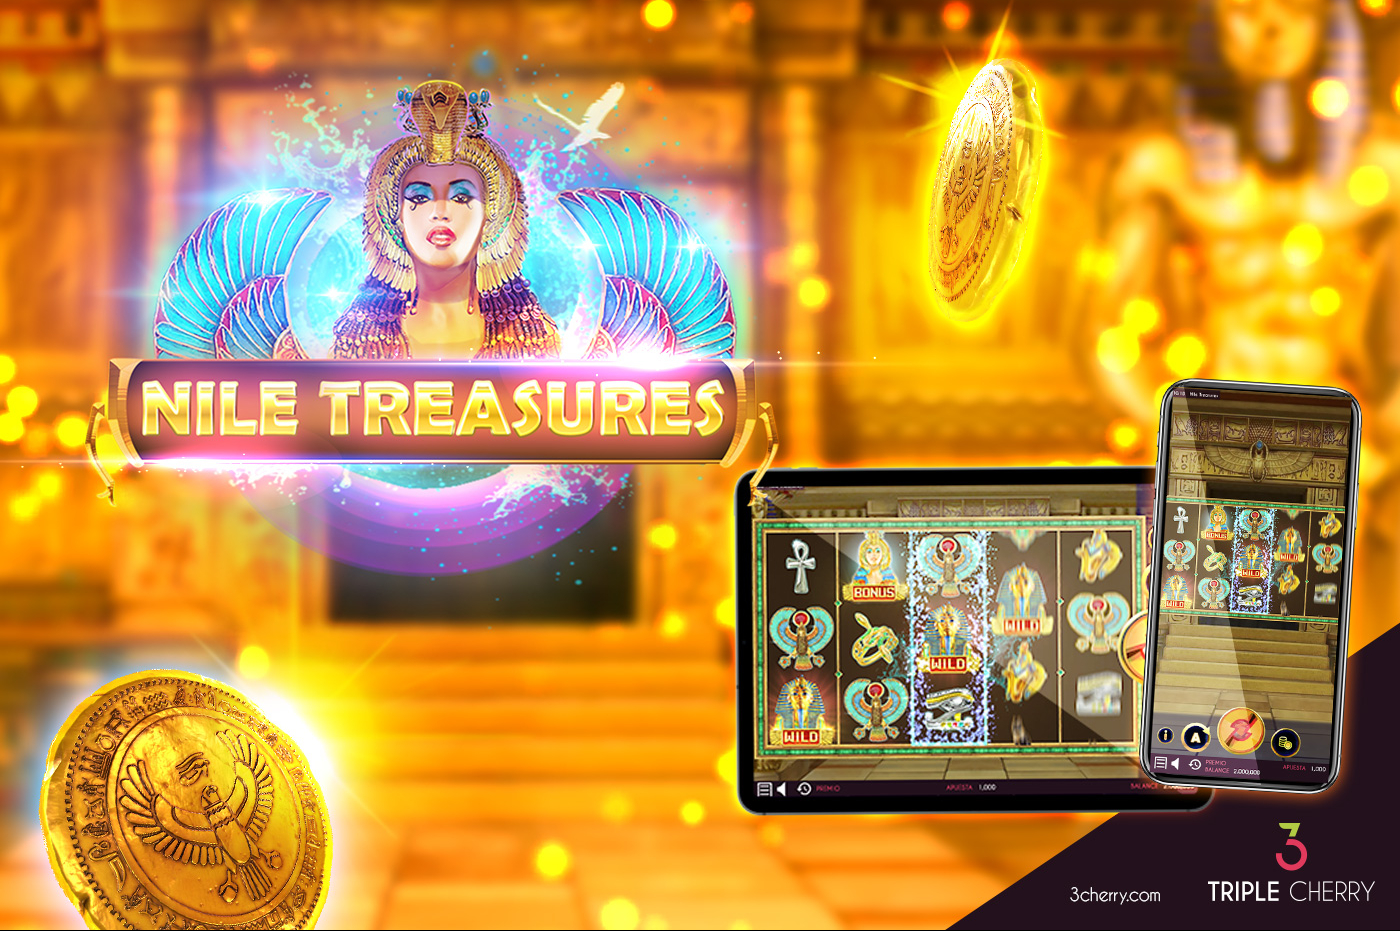 Nile Treasures slot